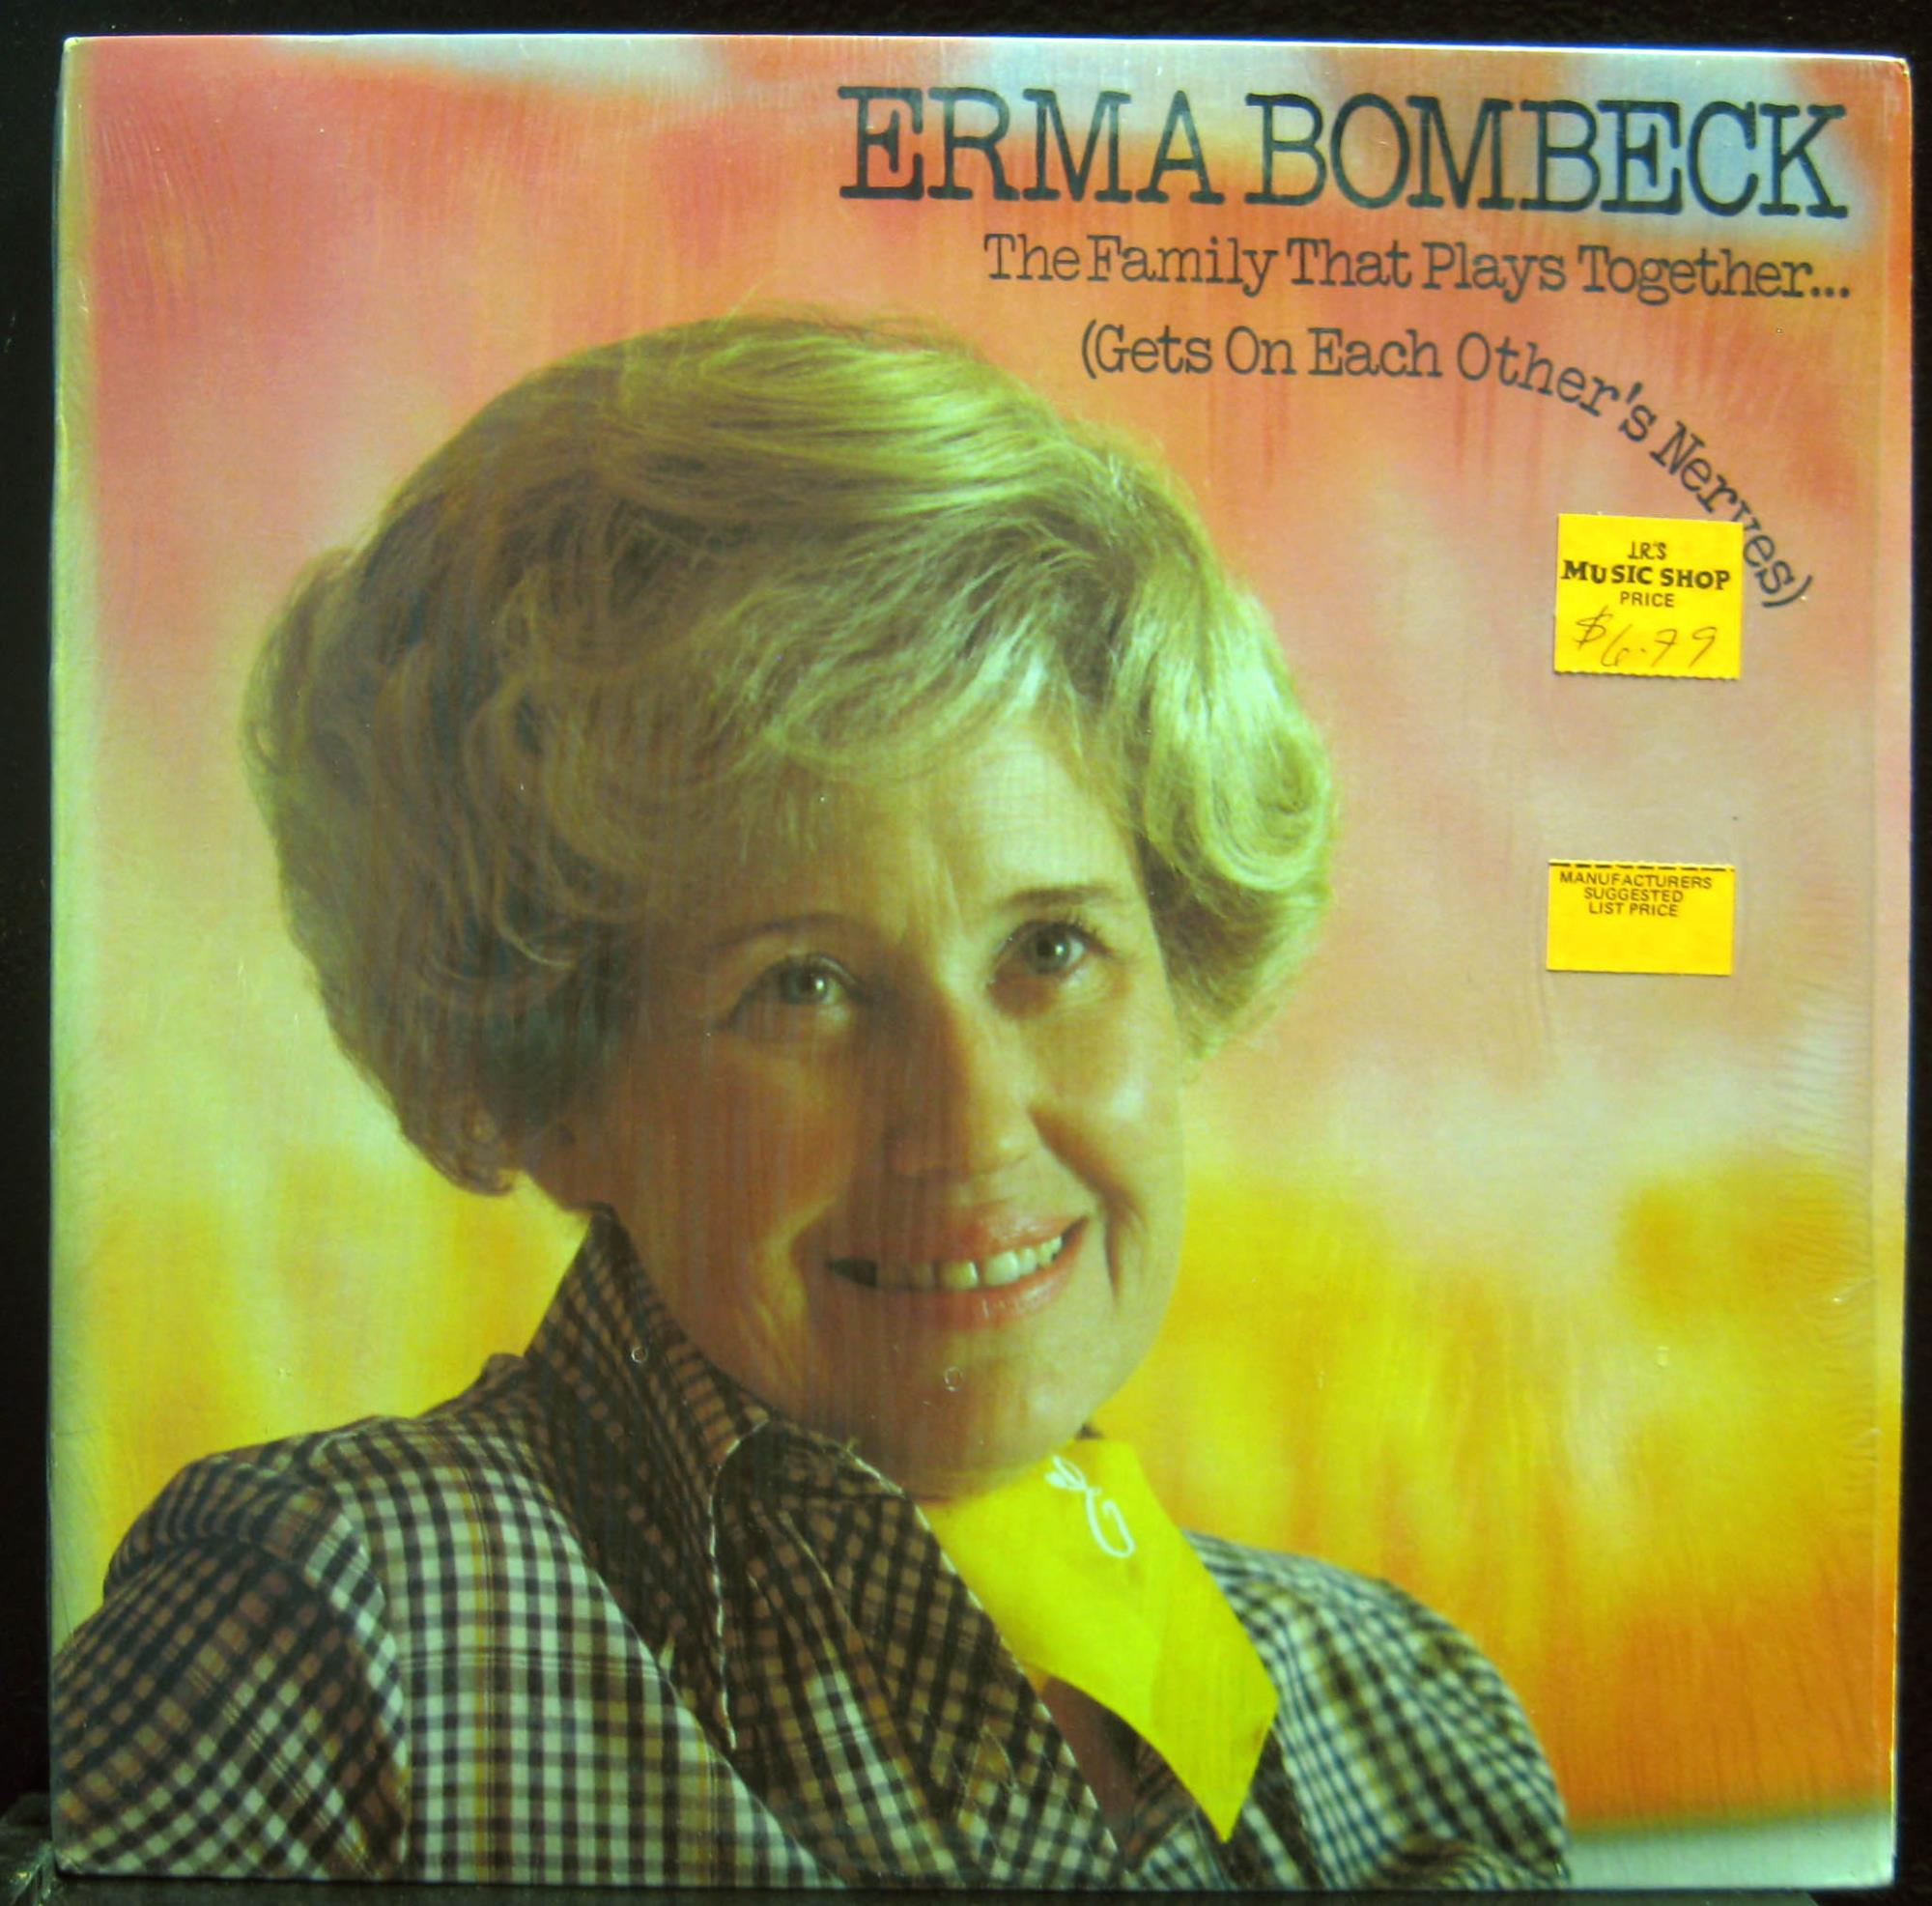 Erma Bombeck Records, LPs, Vinyl And CDs